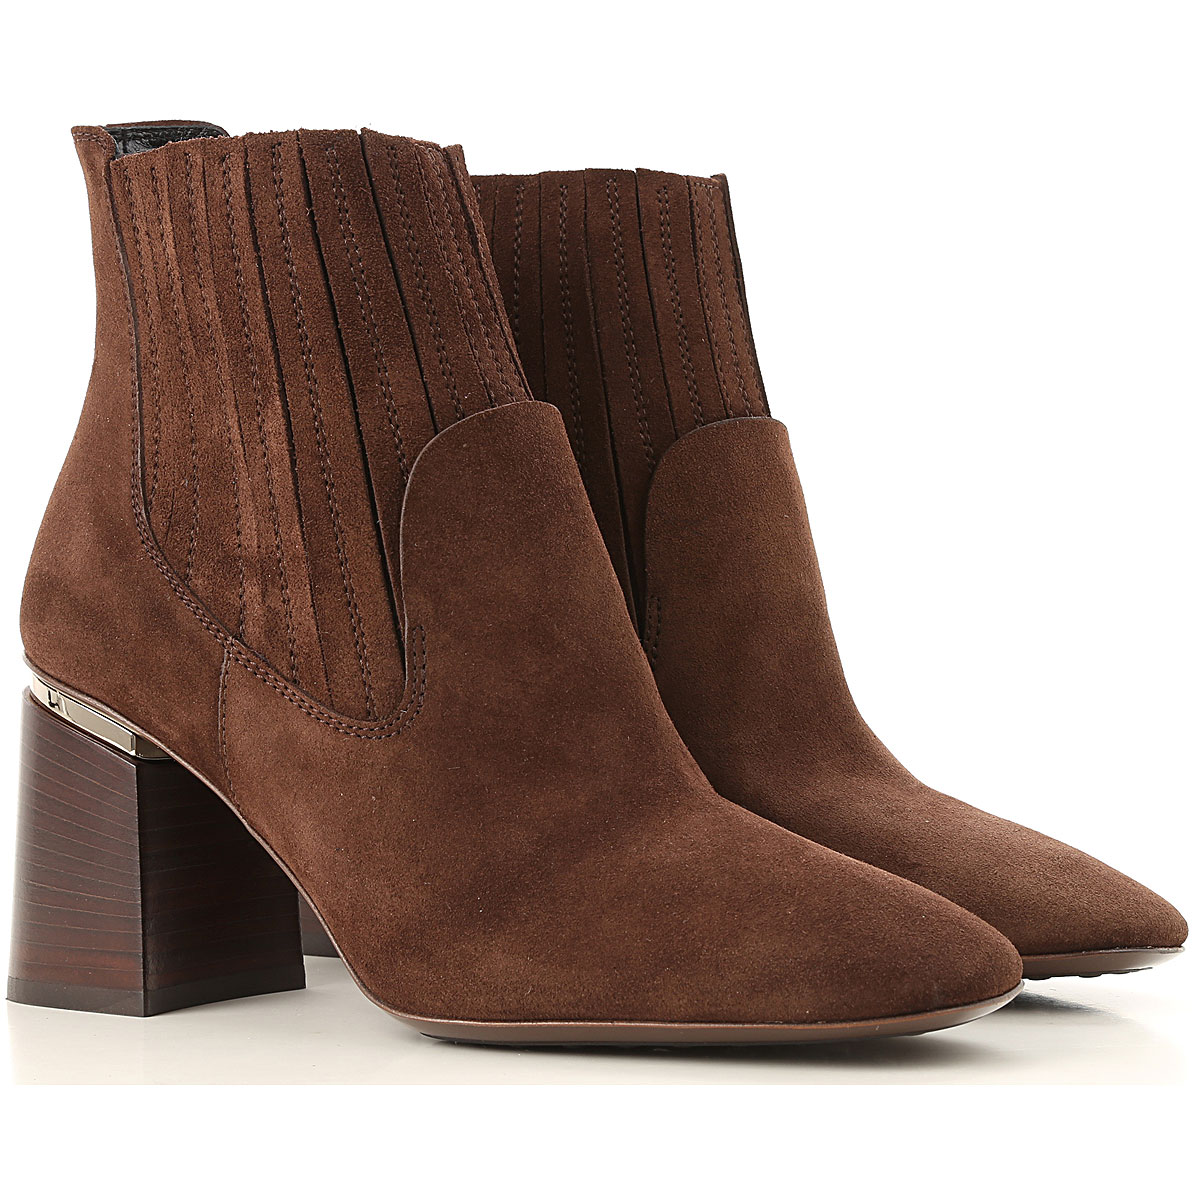 Tods Boots for Women, Booties On Sale, Brown, suede, 2019, 6 6.5 7 8.5 9